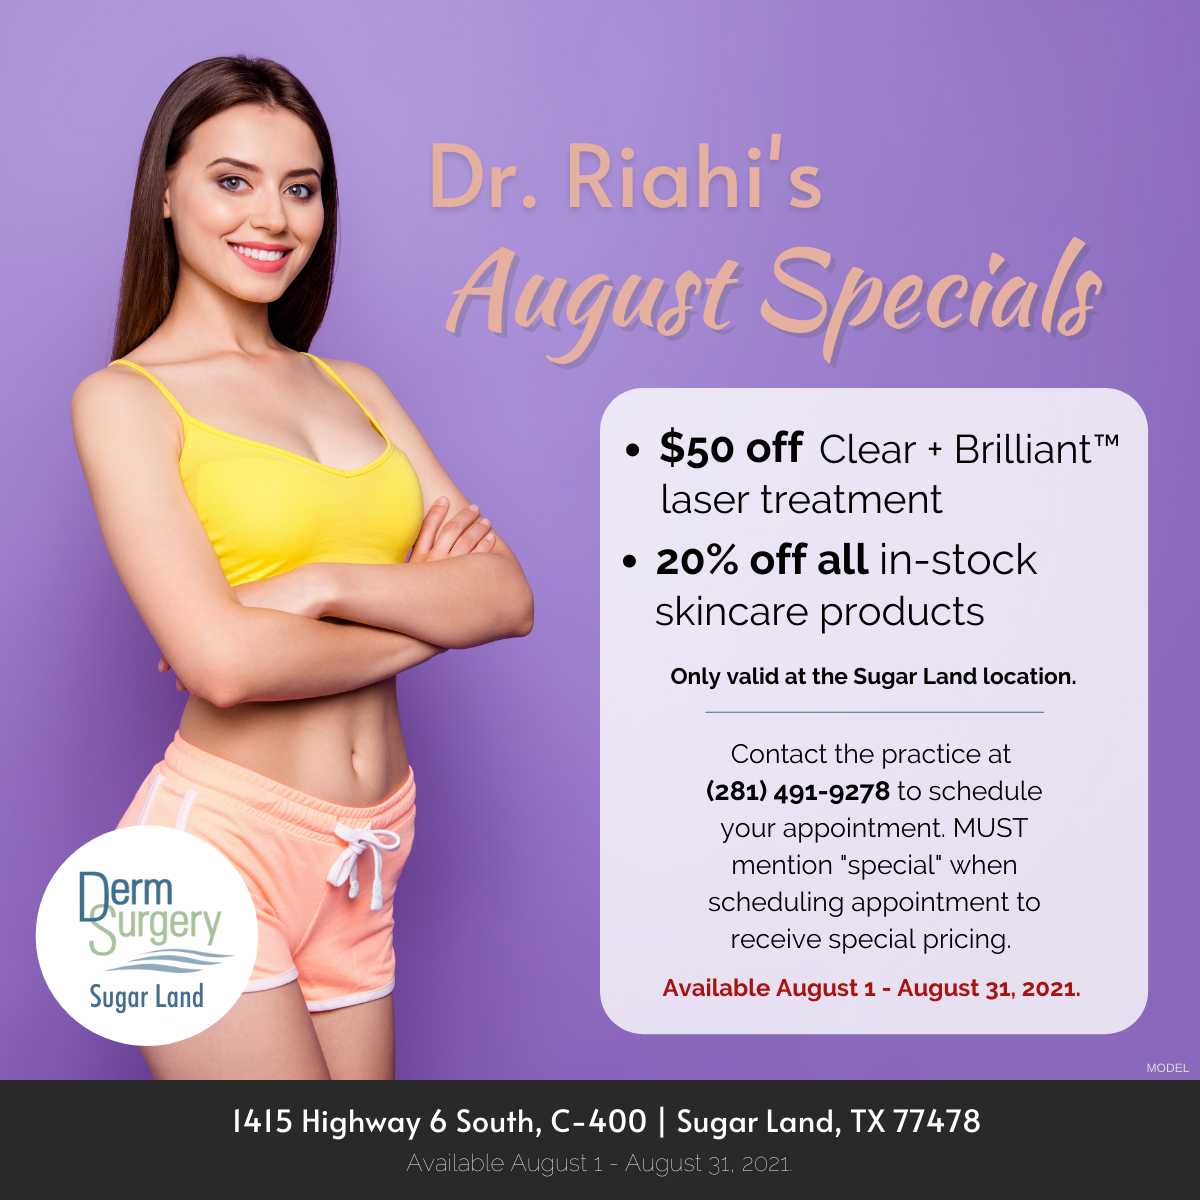 Dr. Riahi's August Specials